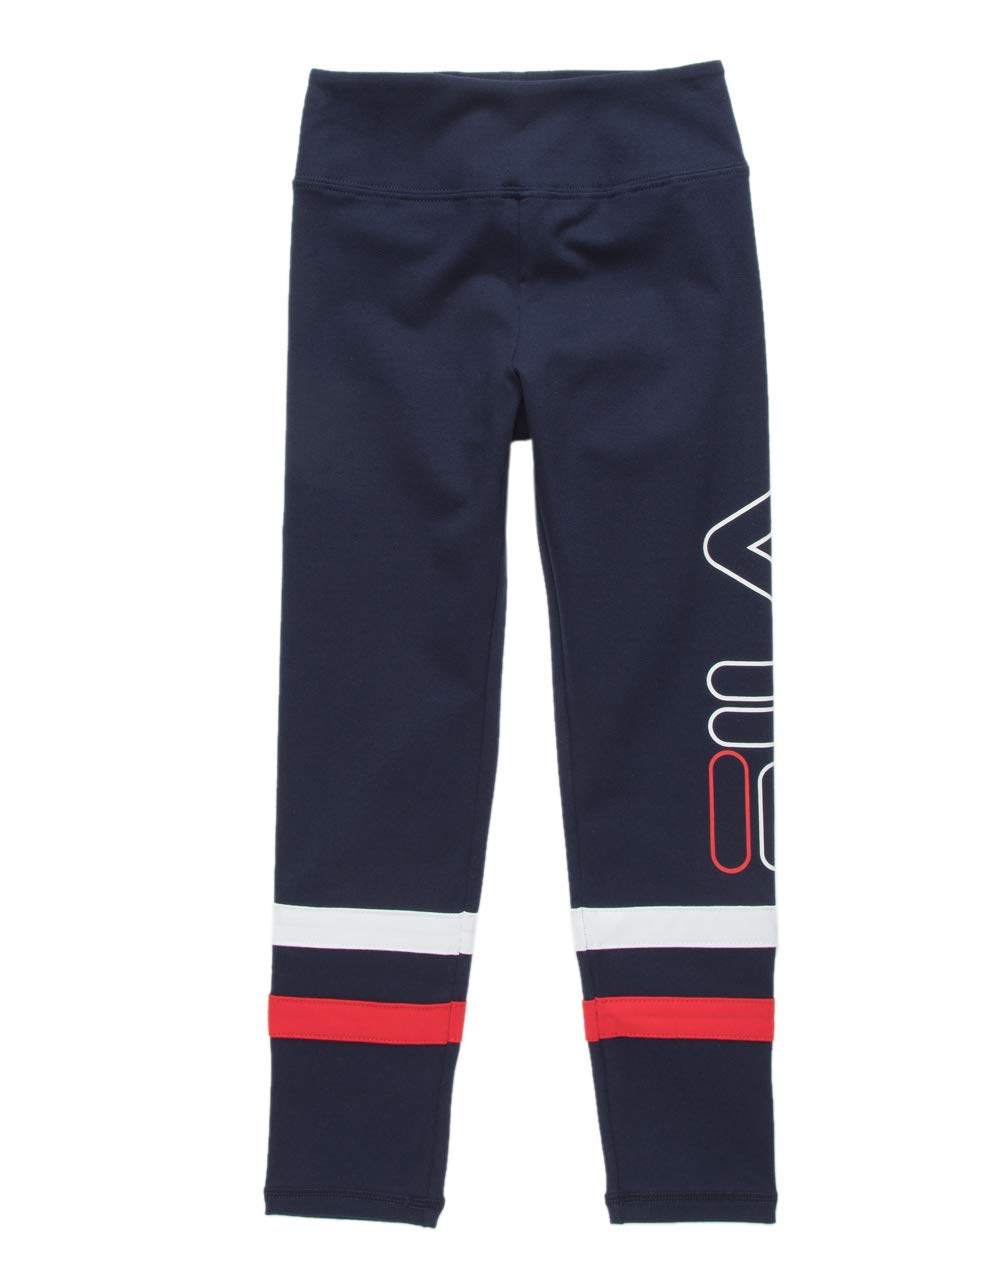 Fila Striped Girls Leggings, Navy, Medium by Fila (Image #1)